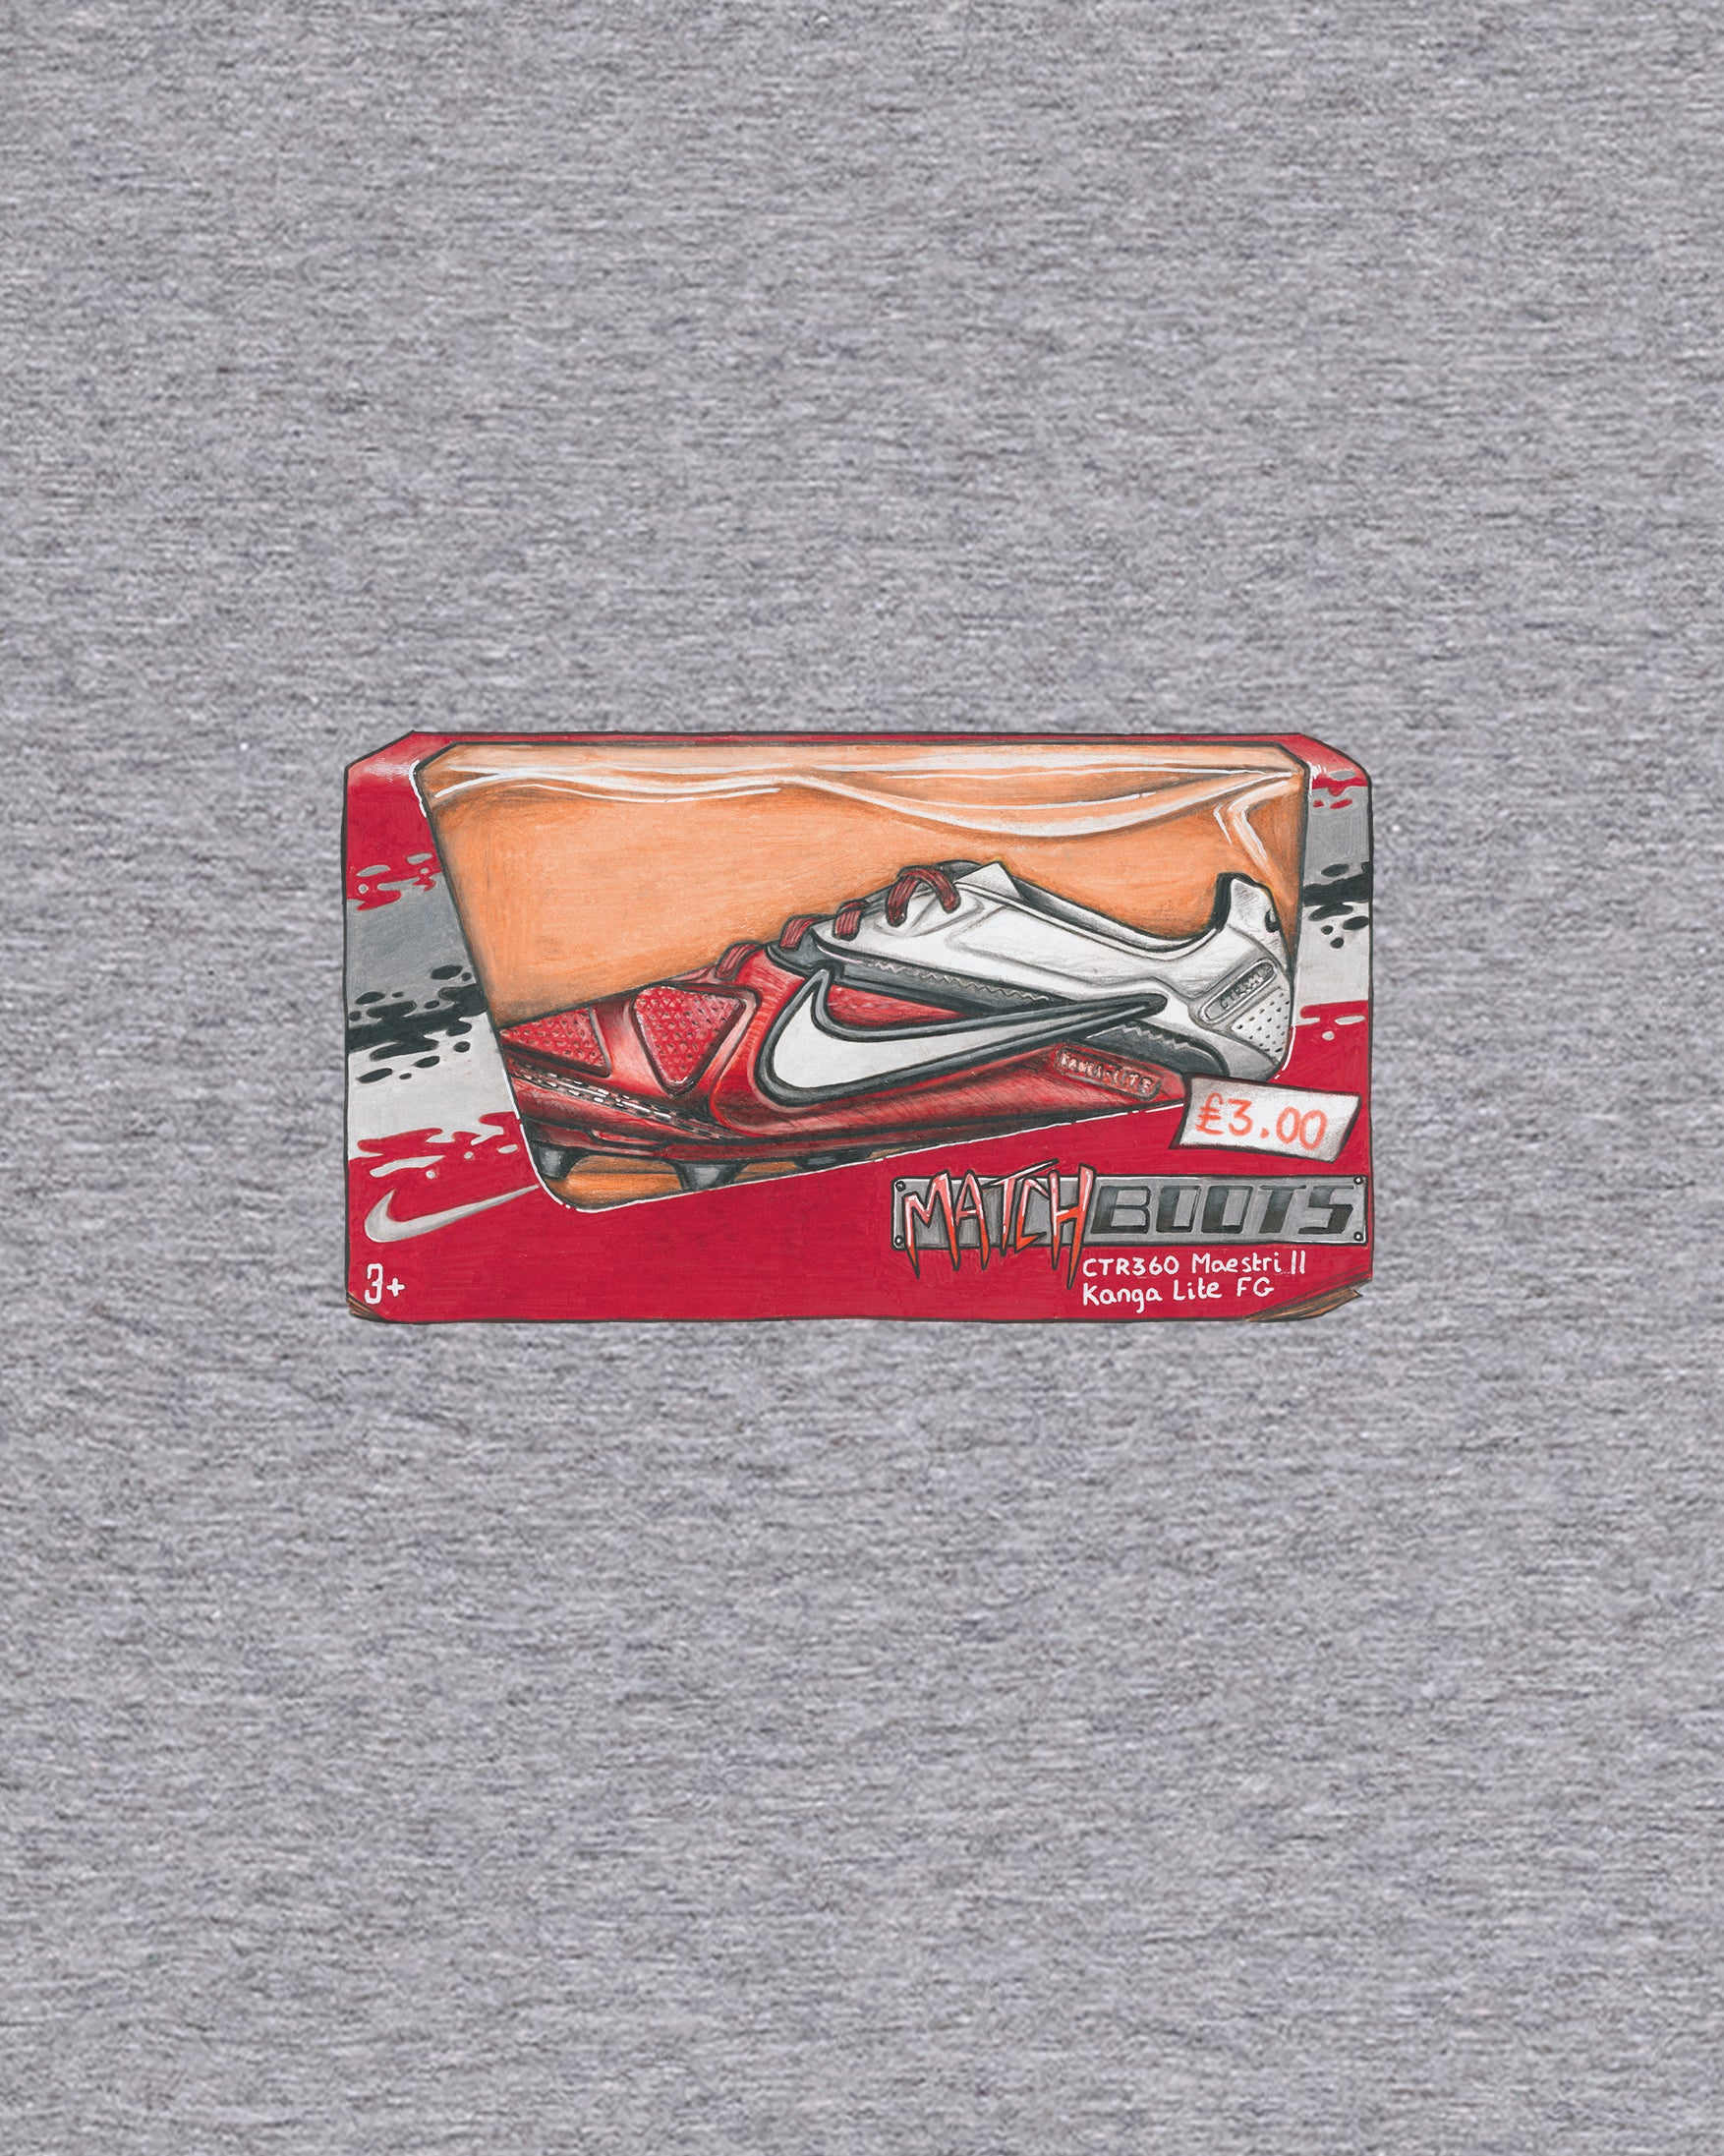 CTR 360 Maestro Matchboots - Tee or Sweat